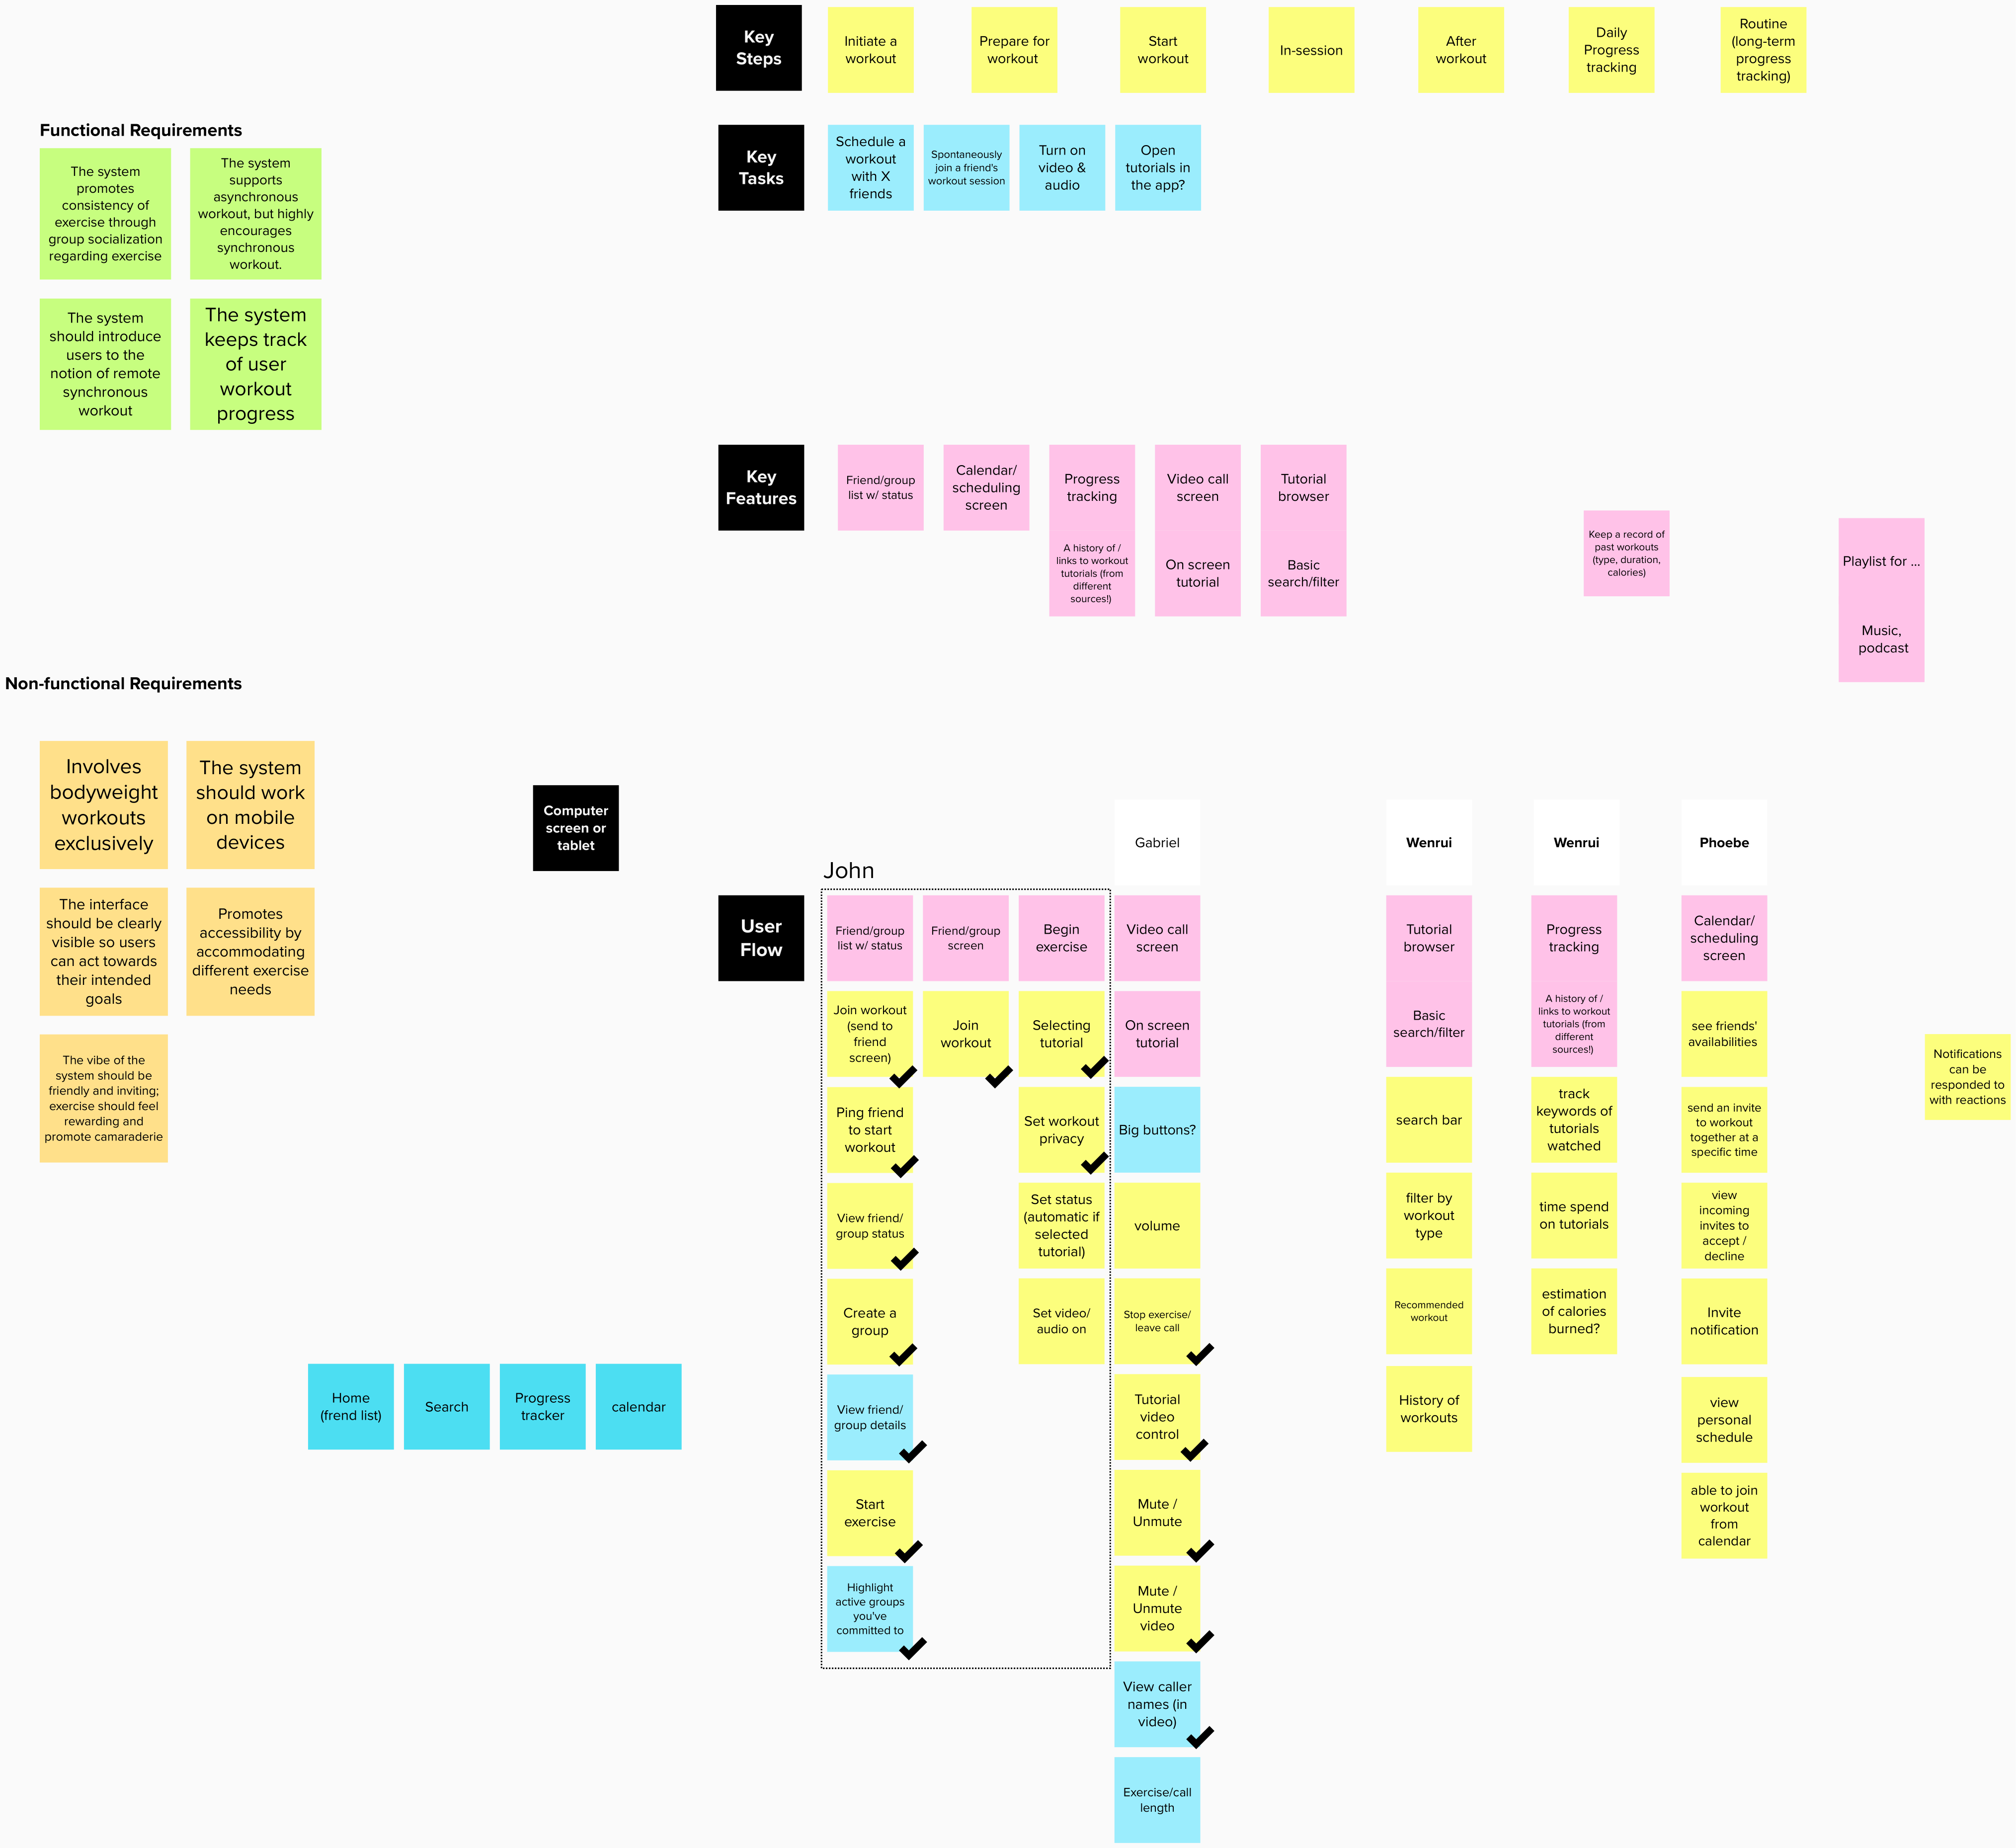 Prototype team planning for key user flows, tasks, and features